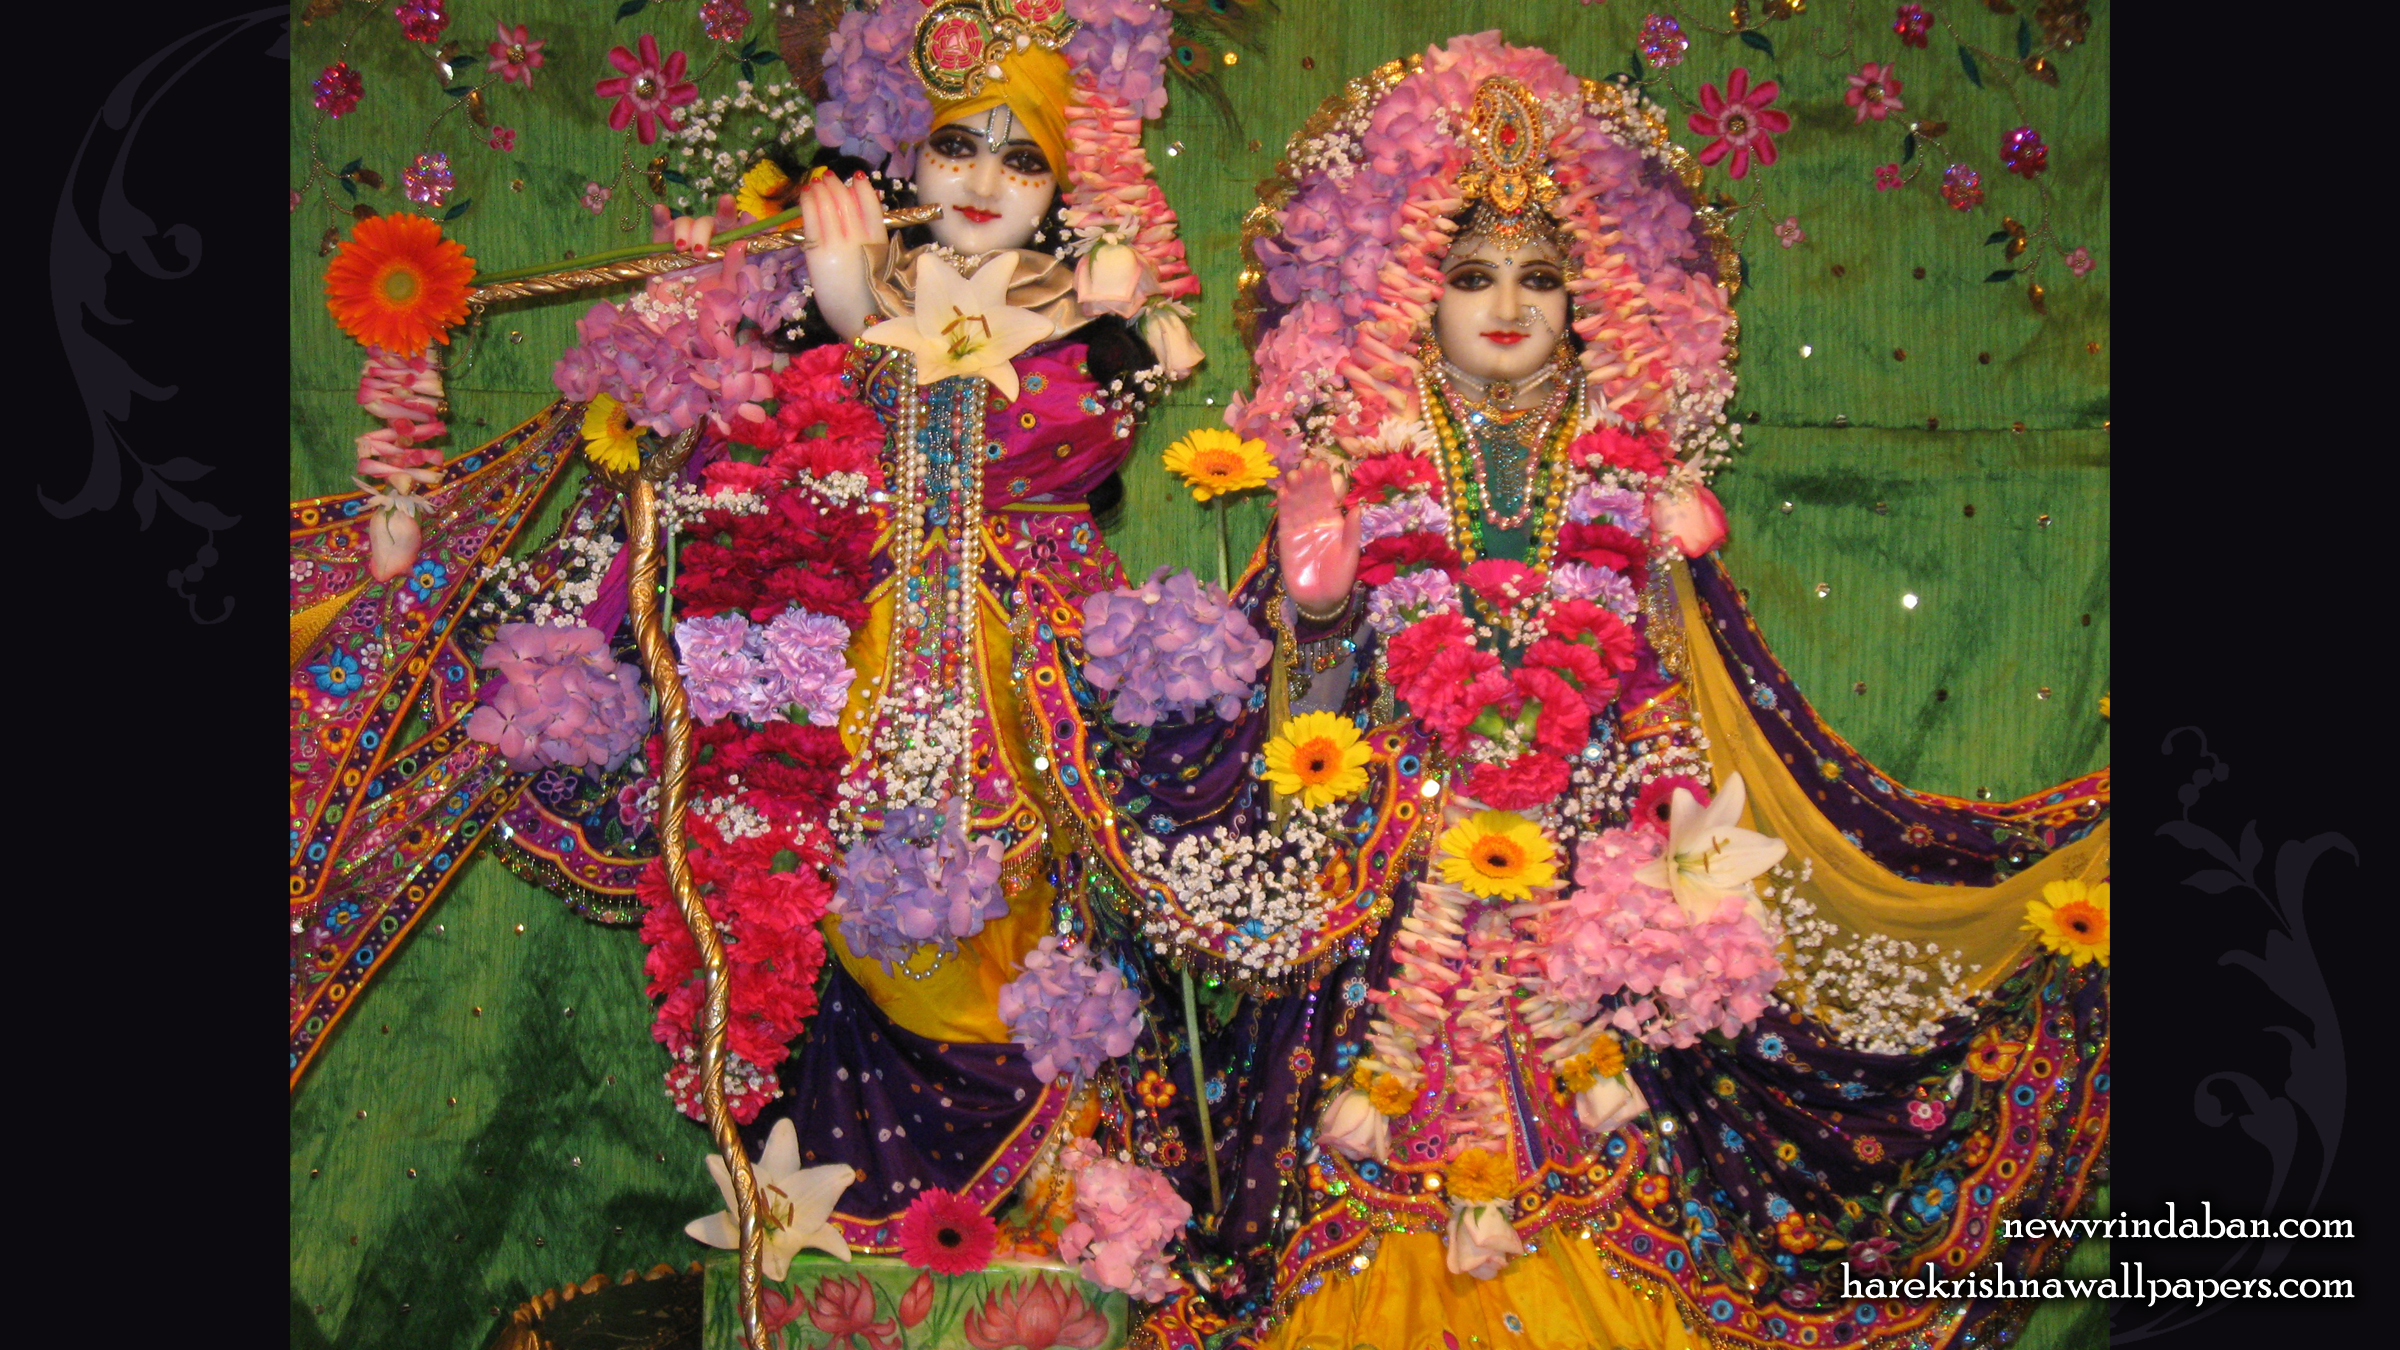 Sri Sri Radha Vrindavana Chandra Wallpaper (004) Size 2400x1350 Download